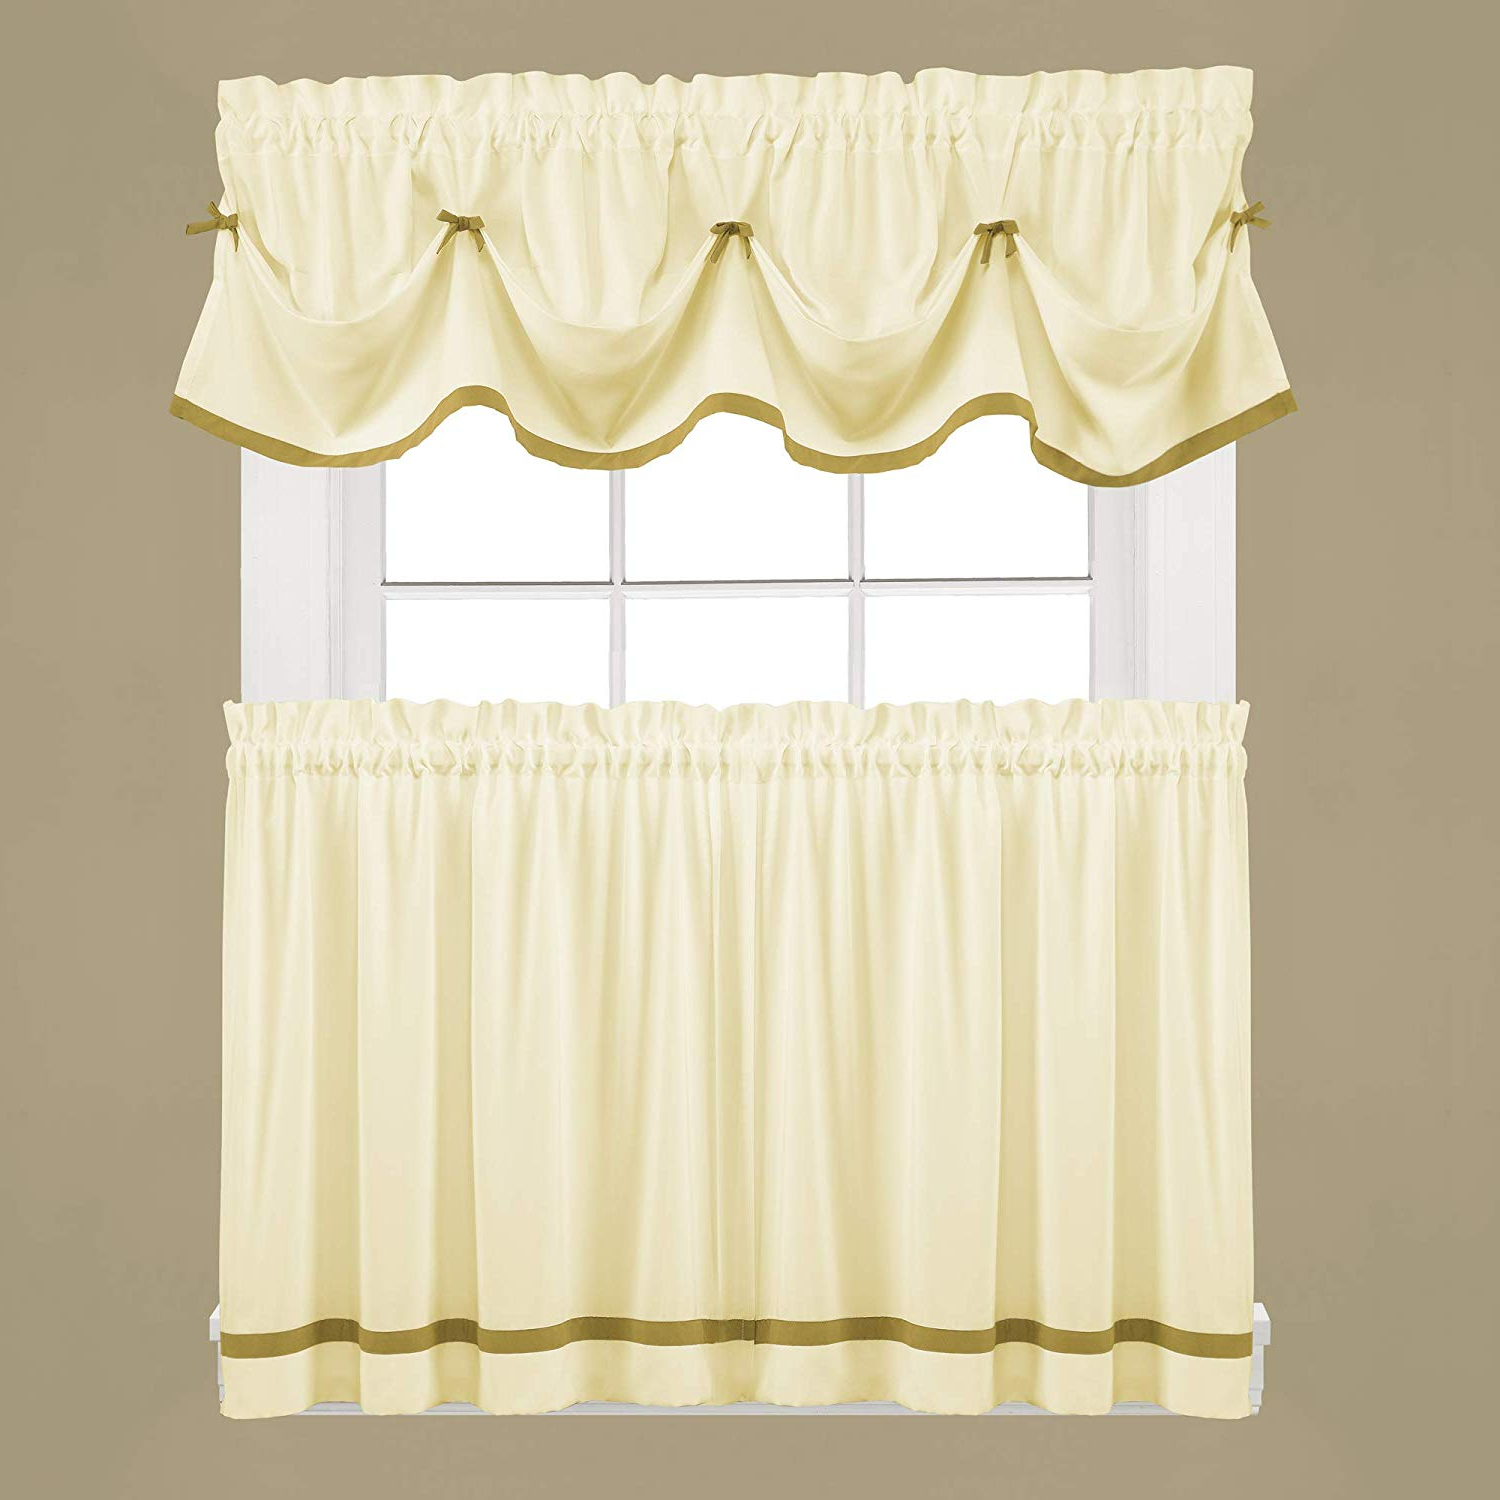 Popular Dove Gray Curtain Tier Pairs Throughout Skl Homesaturday Knight Ltd (View 16 of 20)